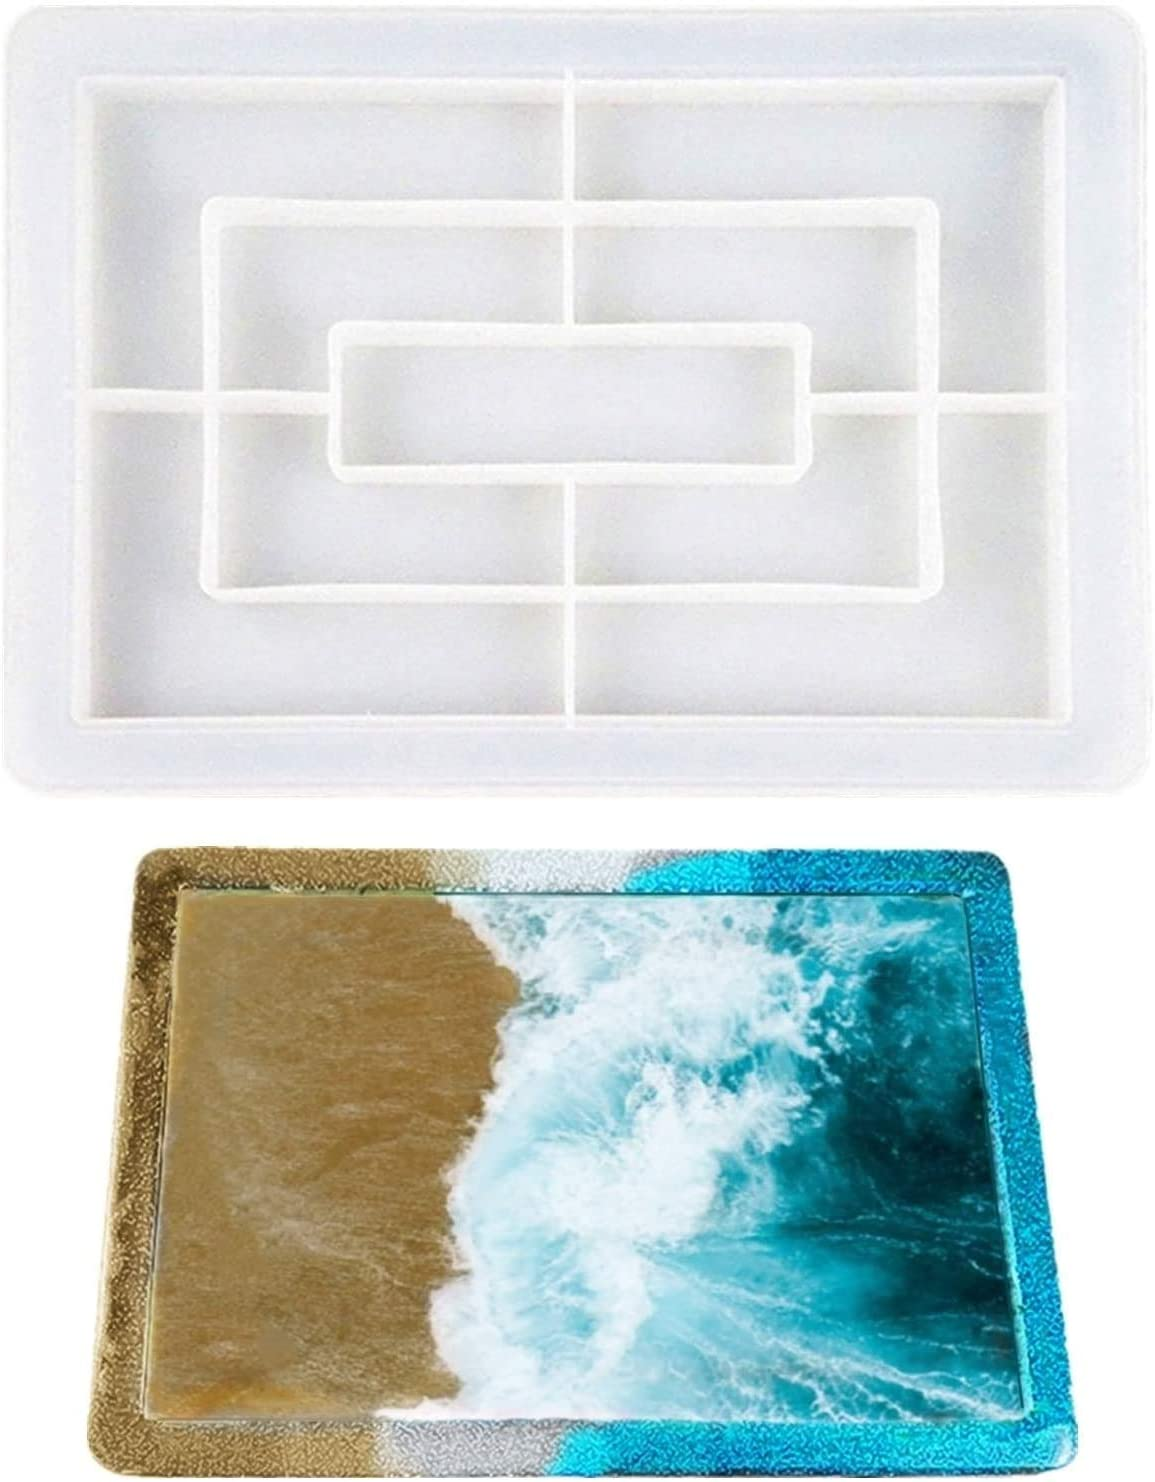 Rolling Tray Resin All Large-scale sale stores are sold Molds,Rolling Molds Edges@with